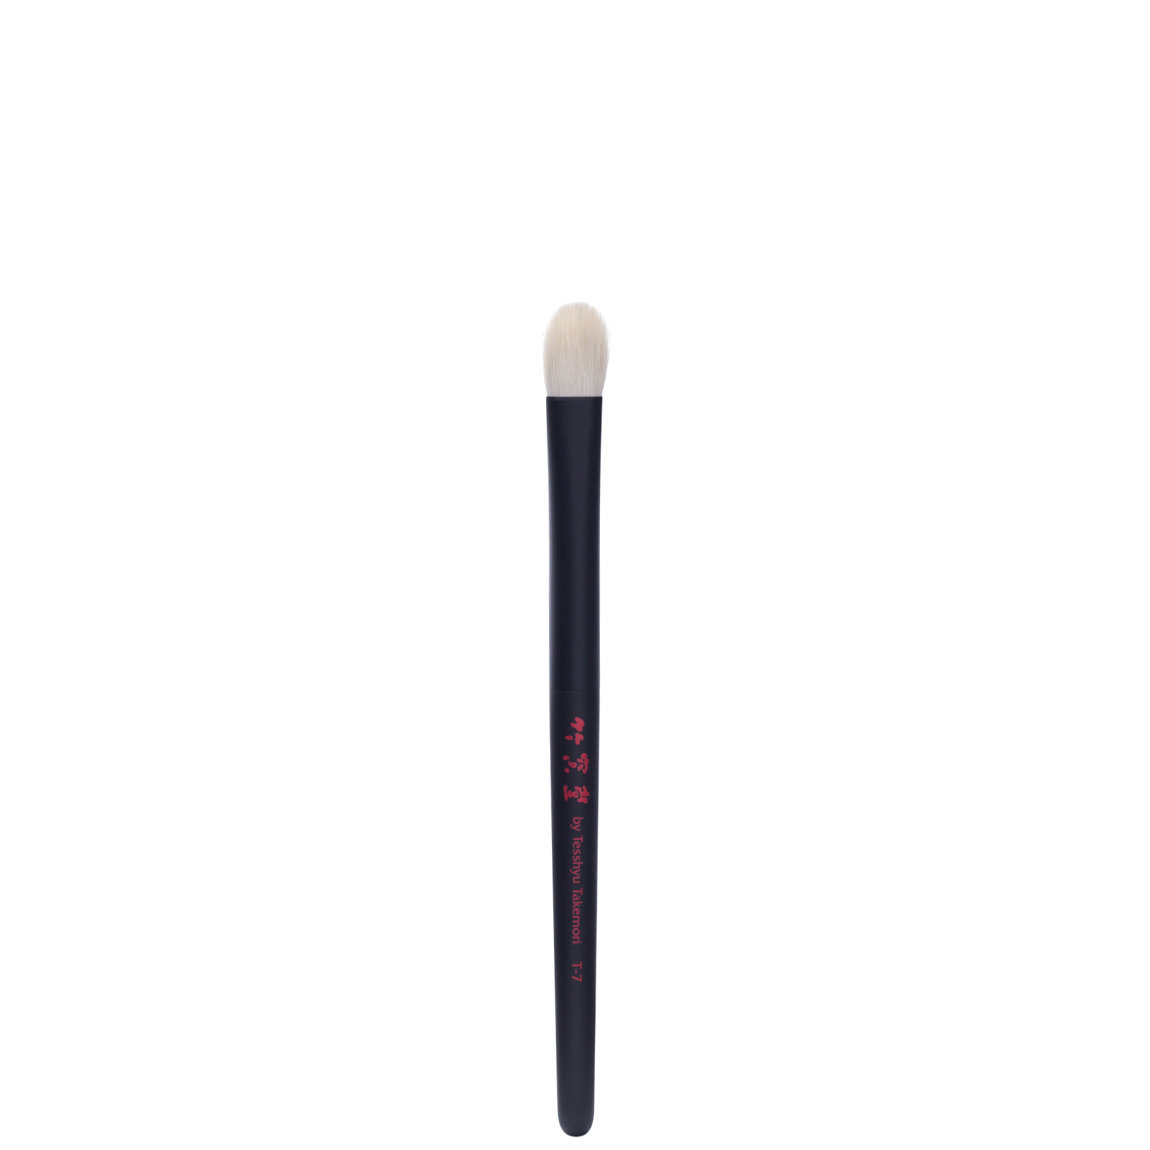 CHIKUHODO Takumi Series T-7 Medium Eye Shadow Brush alternative view 1 - product swatch.